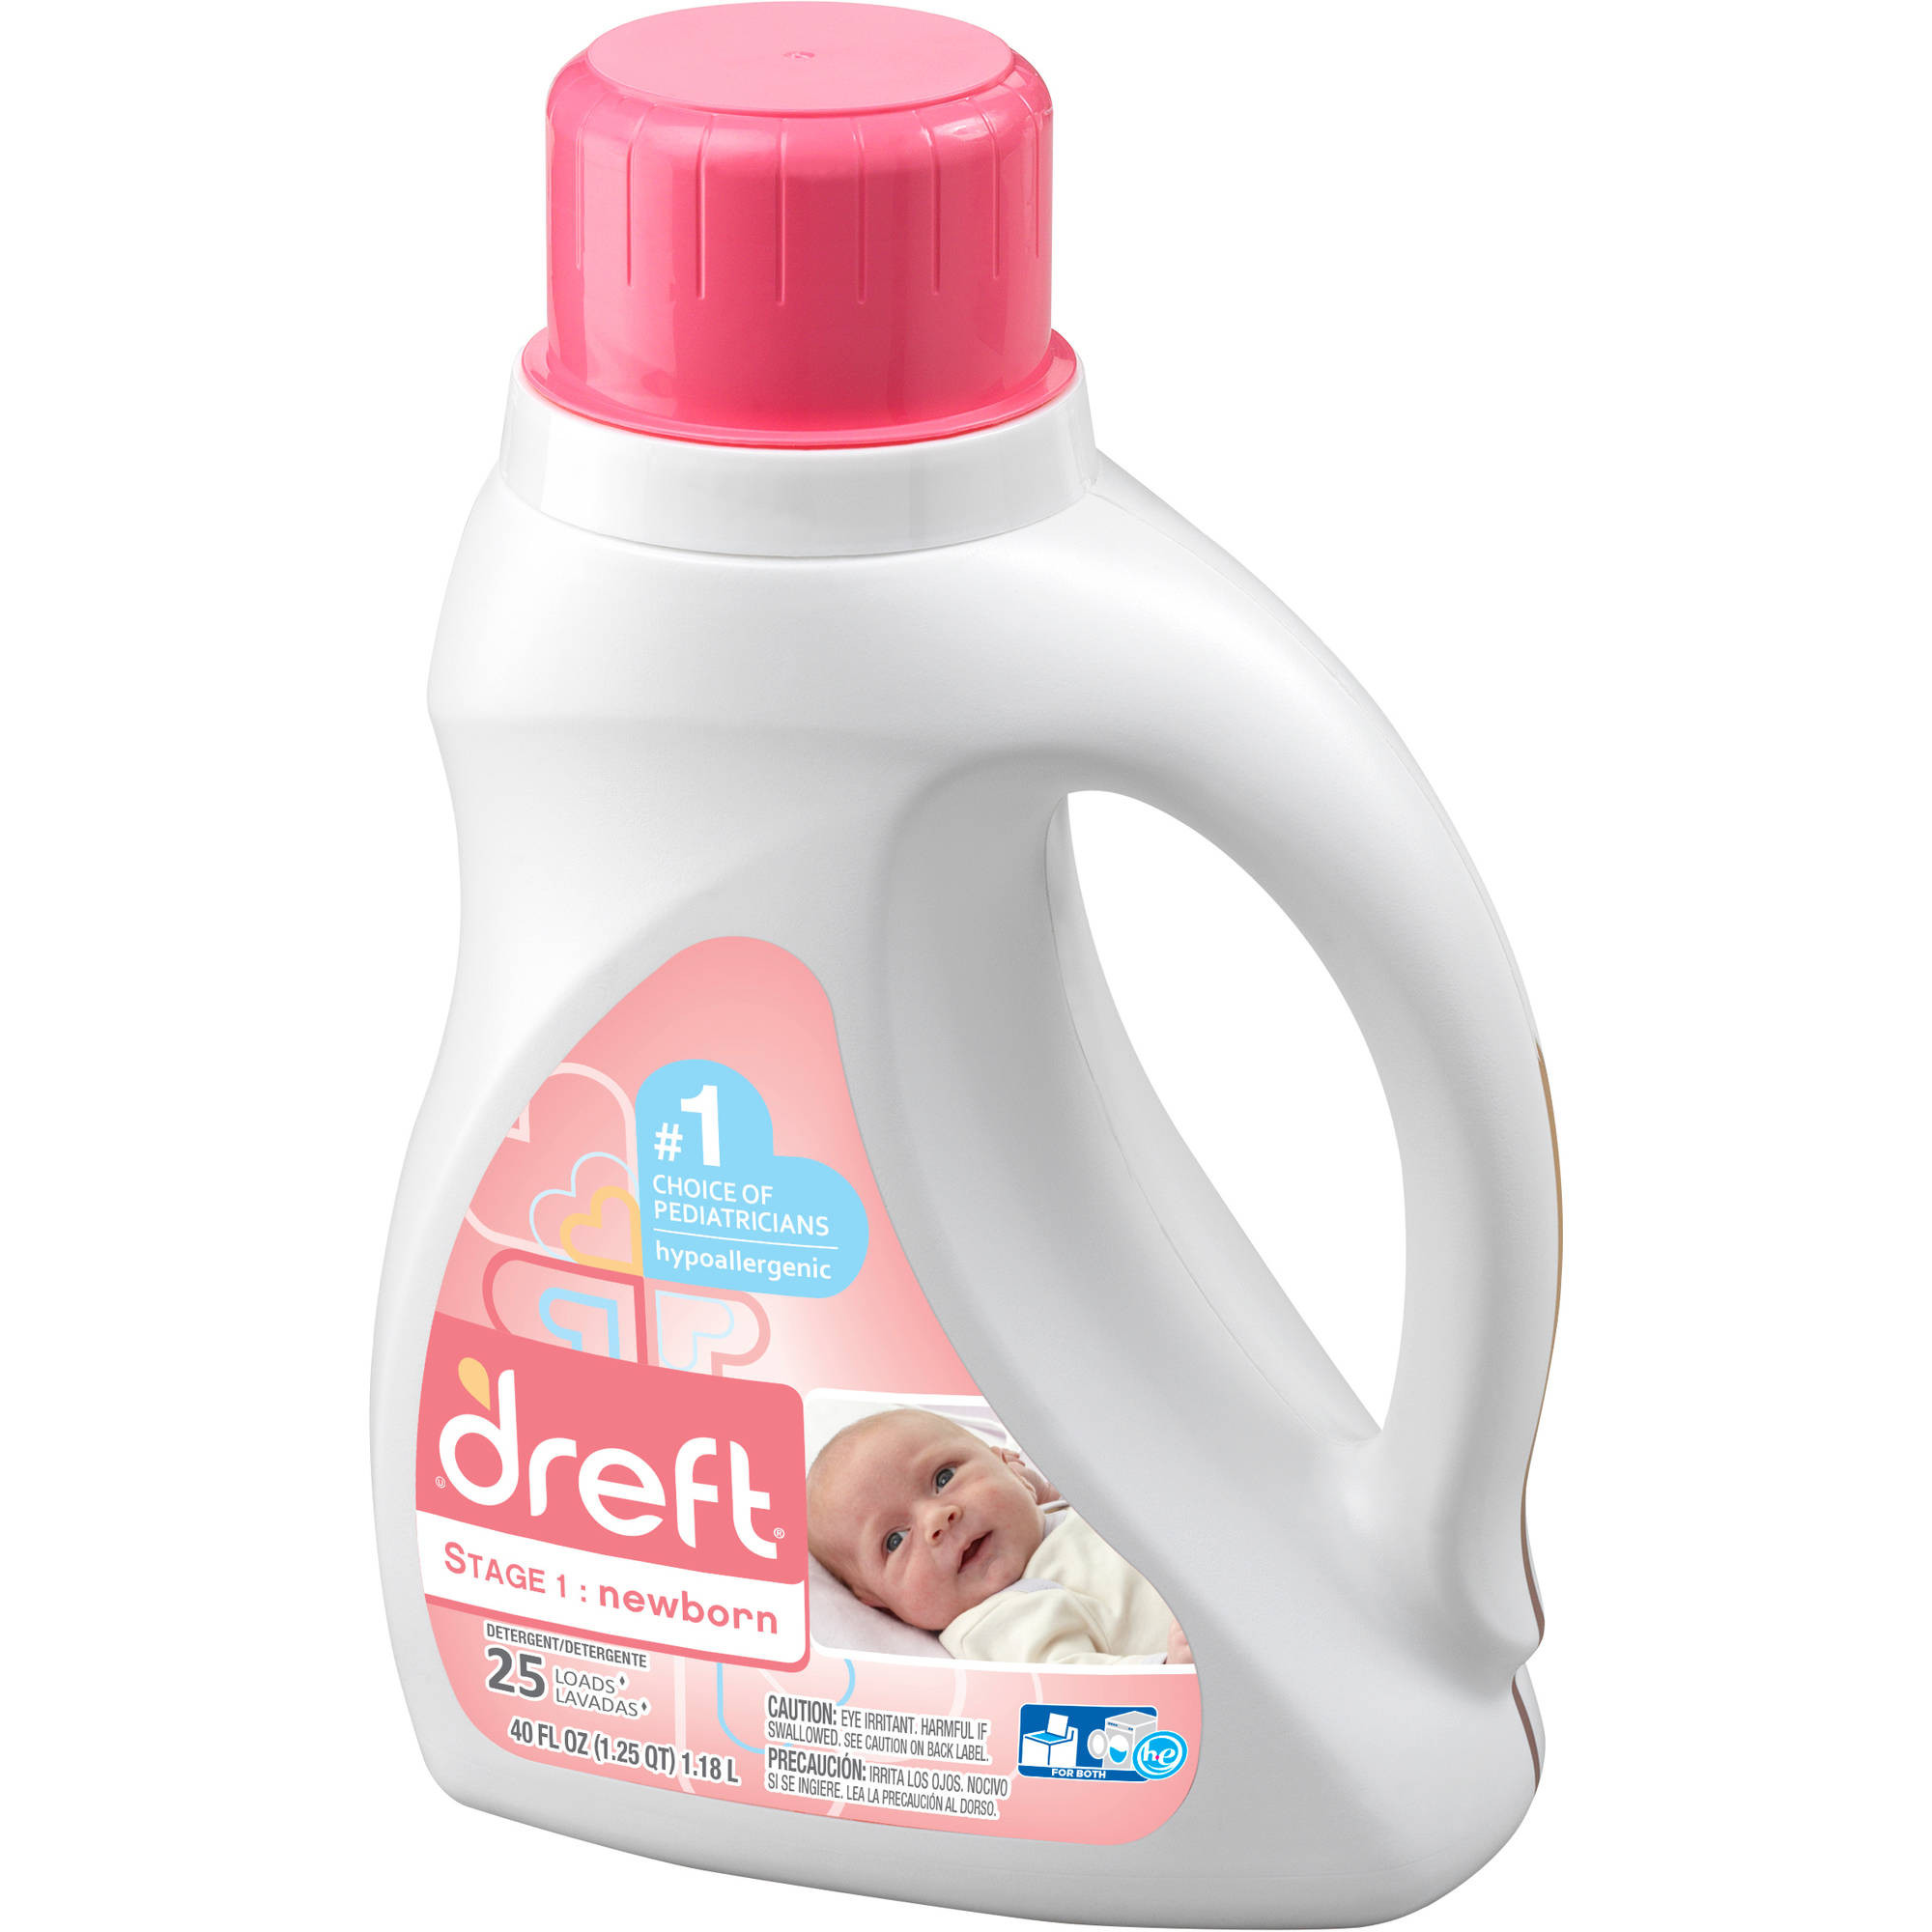 Free 2-day shipping on qualified orders over $ Buy Dreft Stage 1: Newborn Liquid Laundry Detergent, 32 Loads 50 fl oz at etransparencia.ml().